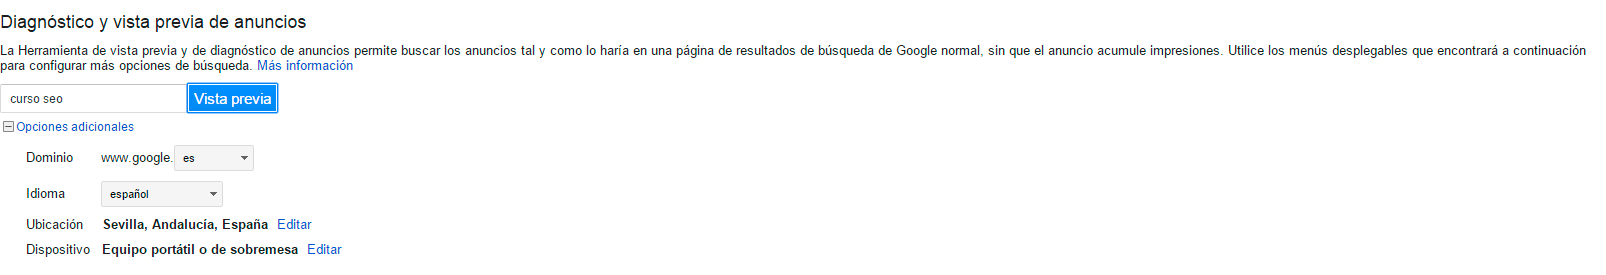 consulta virtual adwords